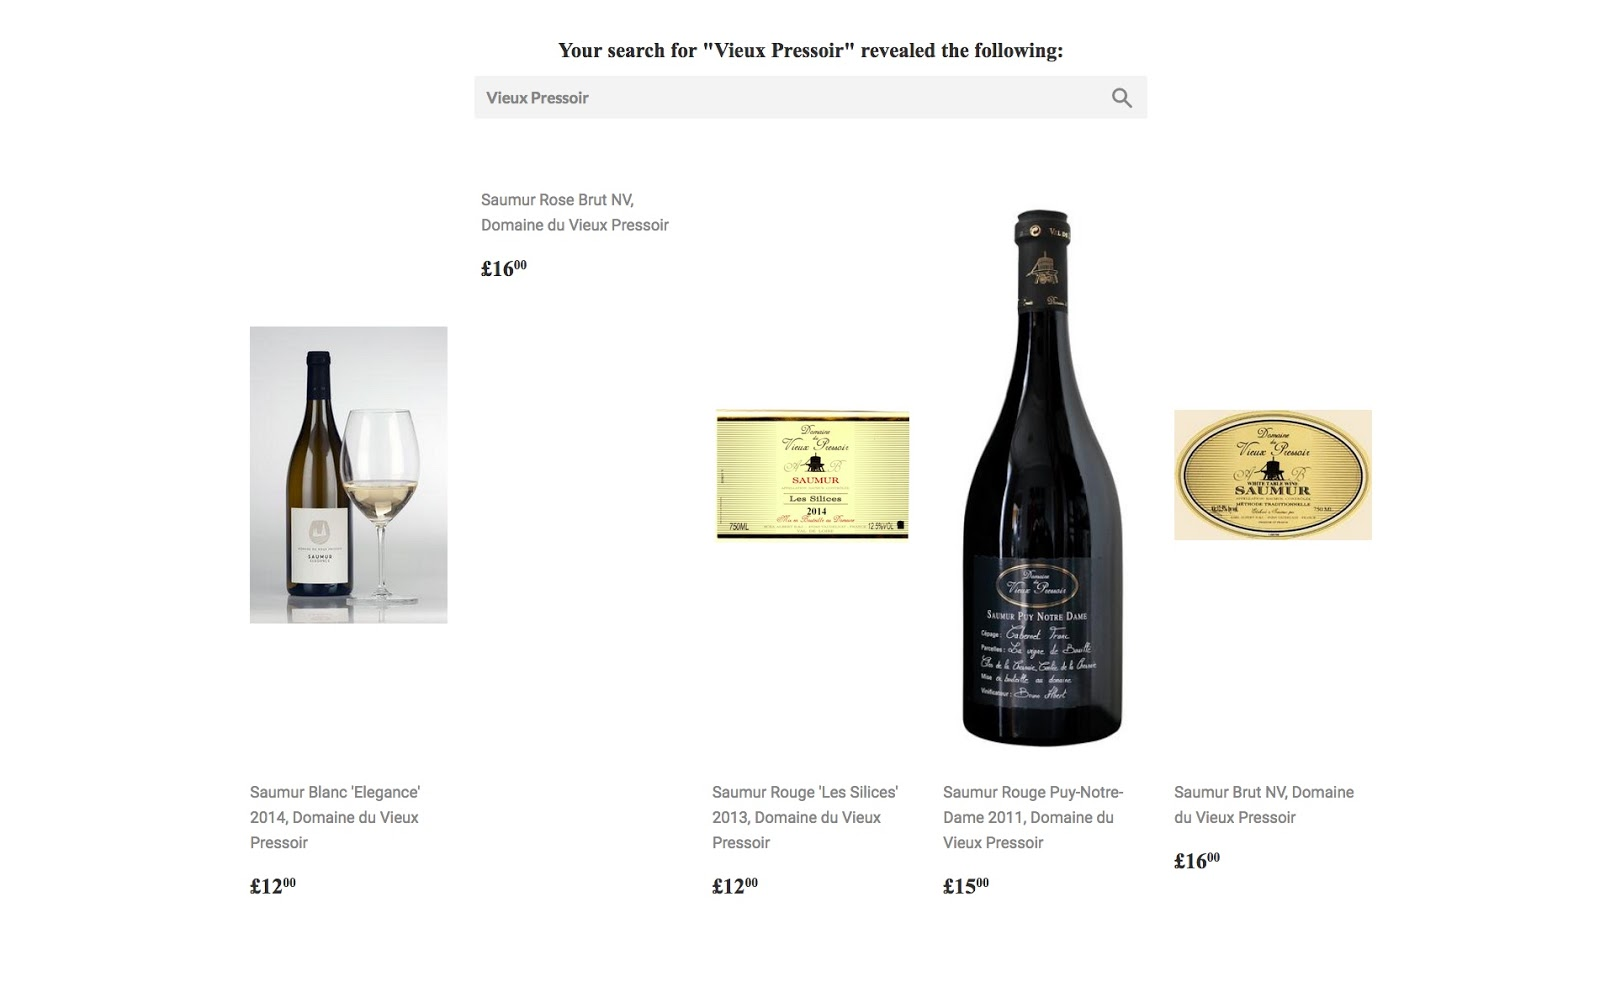 The Flying Corkscrew Ltd/ The Great Gaddesden Wine Company Ltd (Ingrid and  Paul Johnson) -– warning: failure to pay for wine